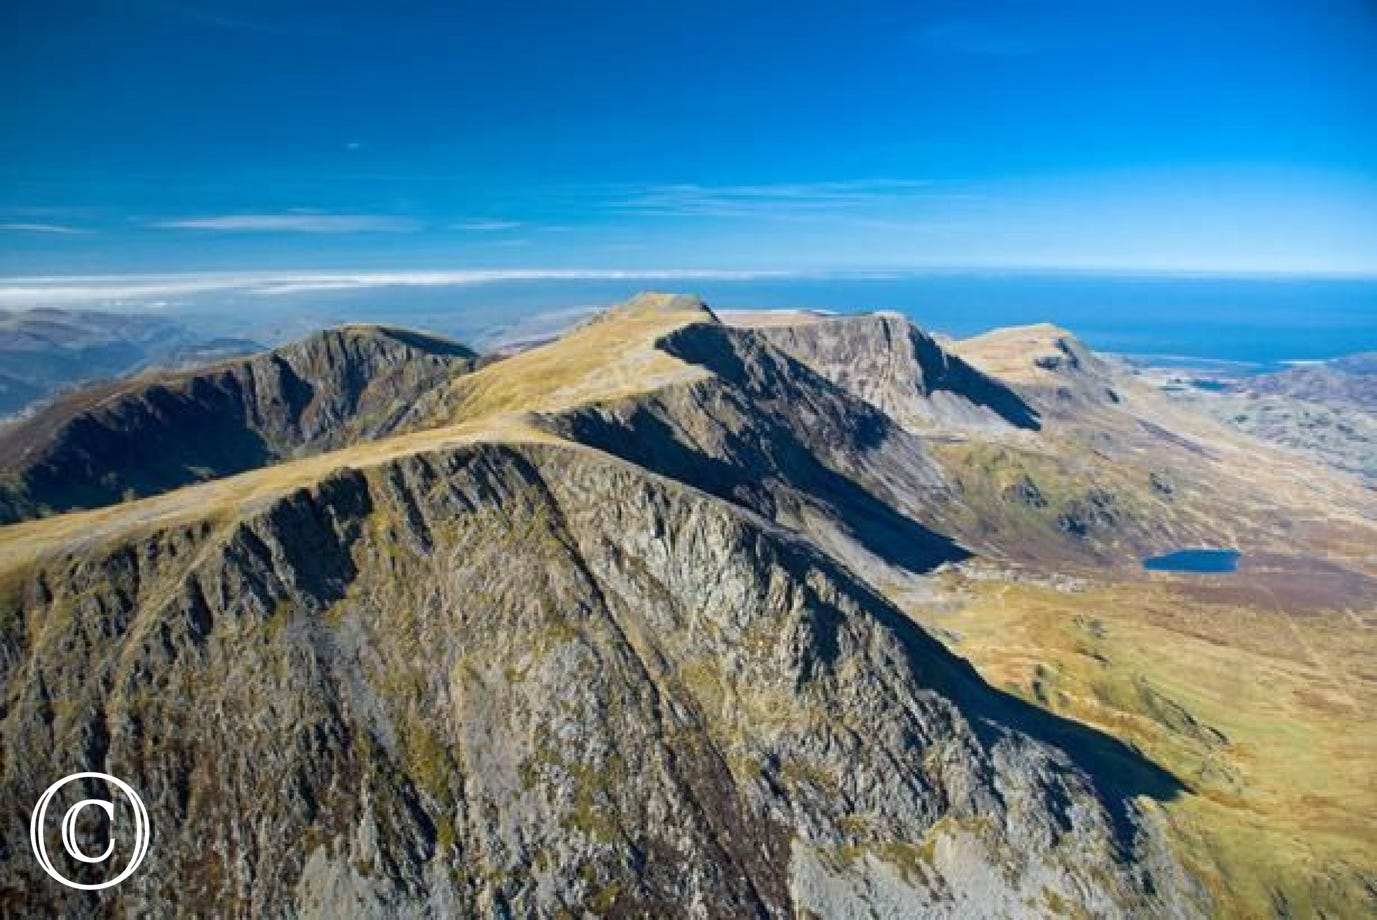 Looking out to the coast from the peak of Cader Idris, Snowdonia